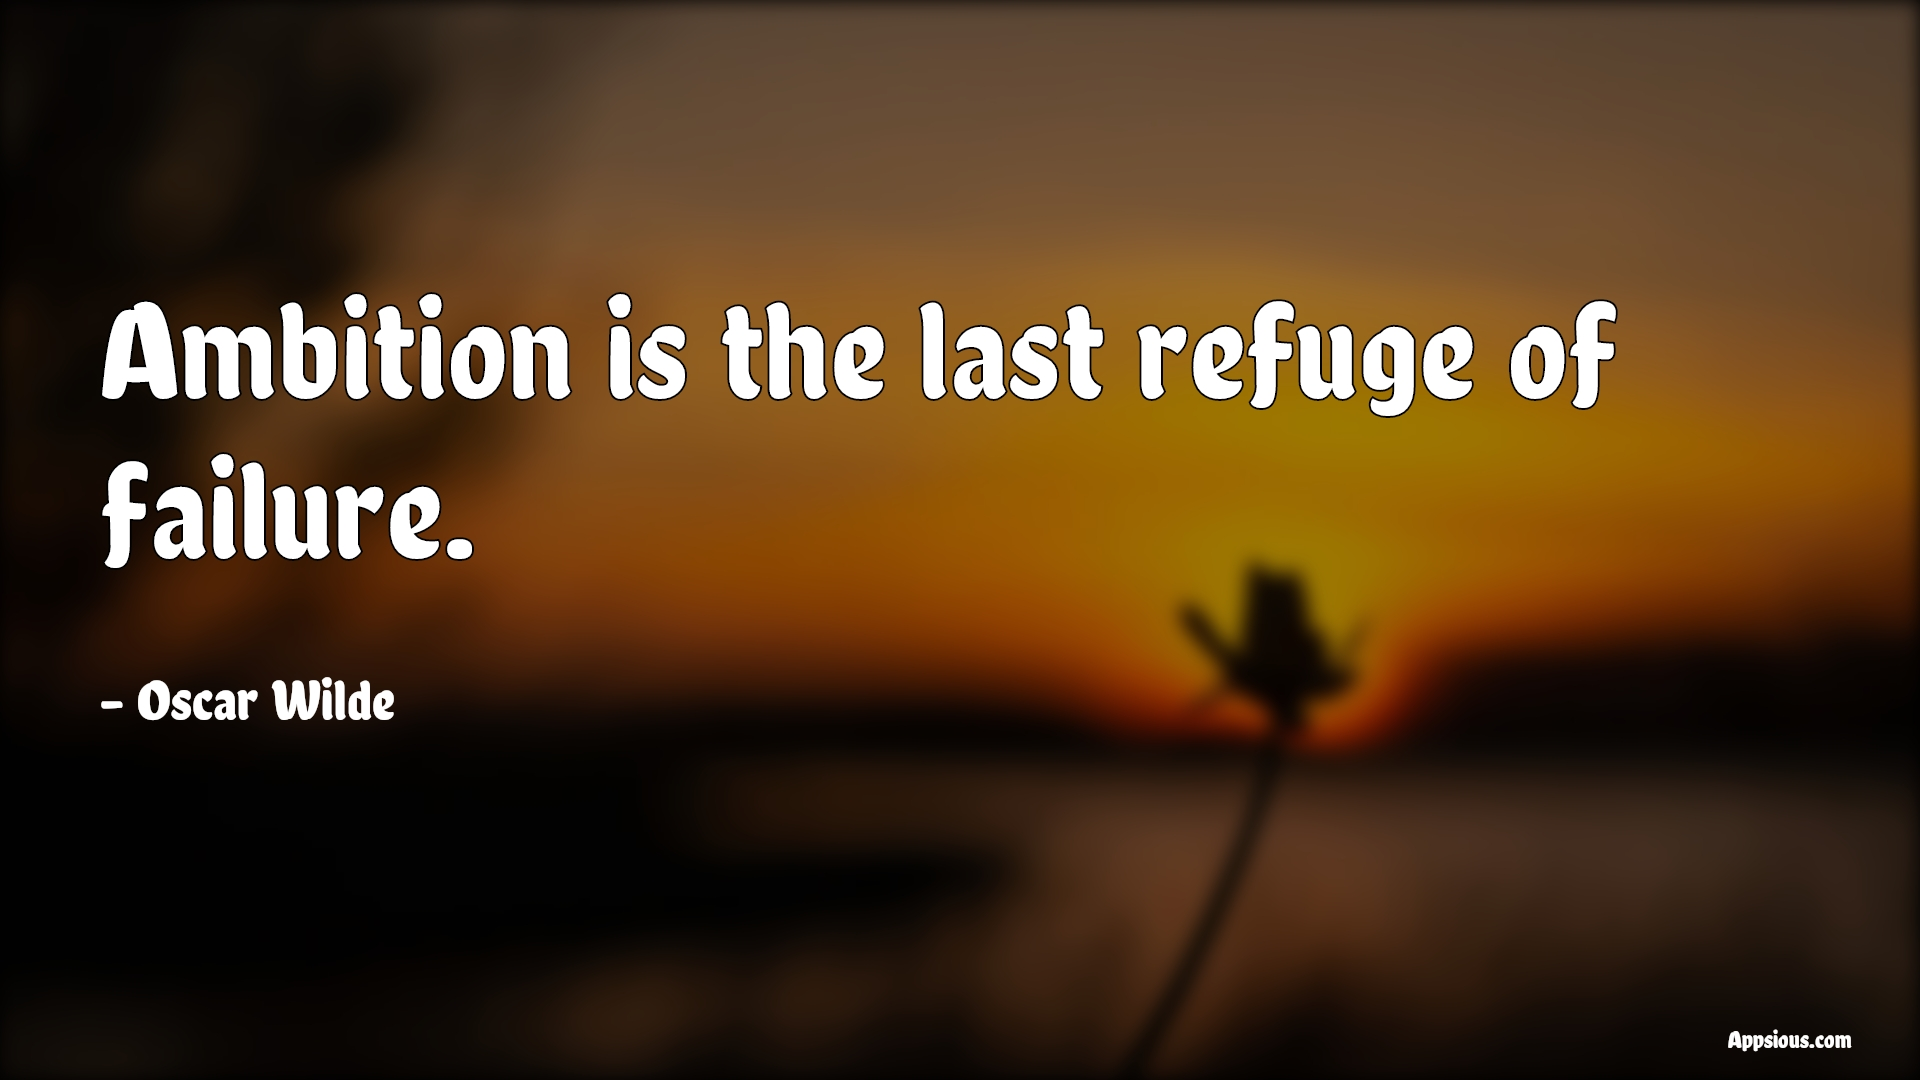 Ambition is the last refuge of failure.